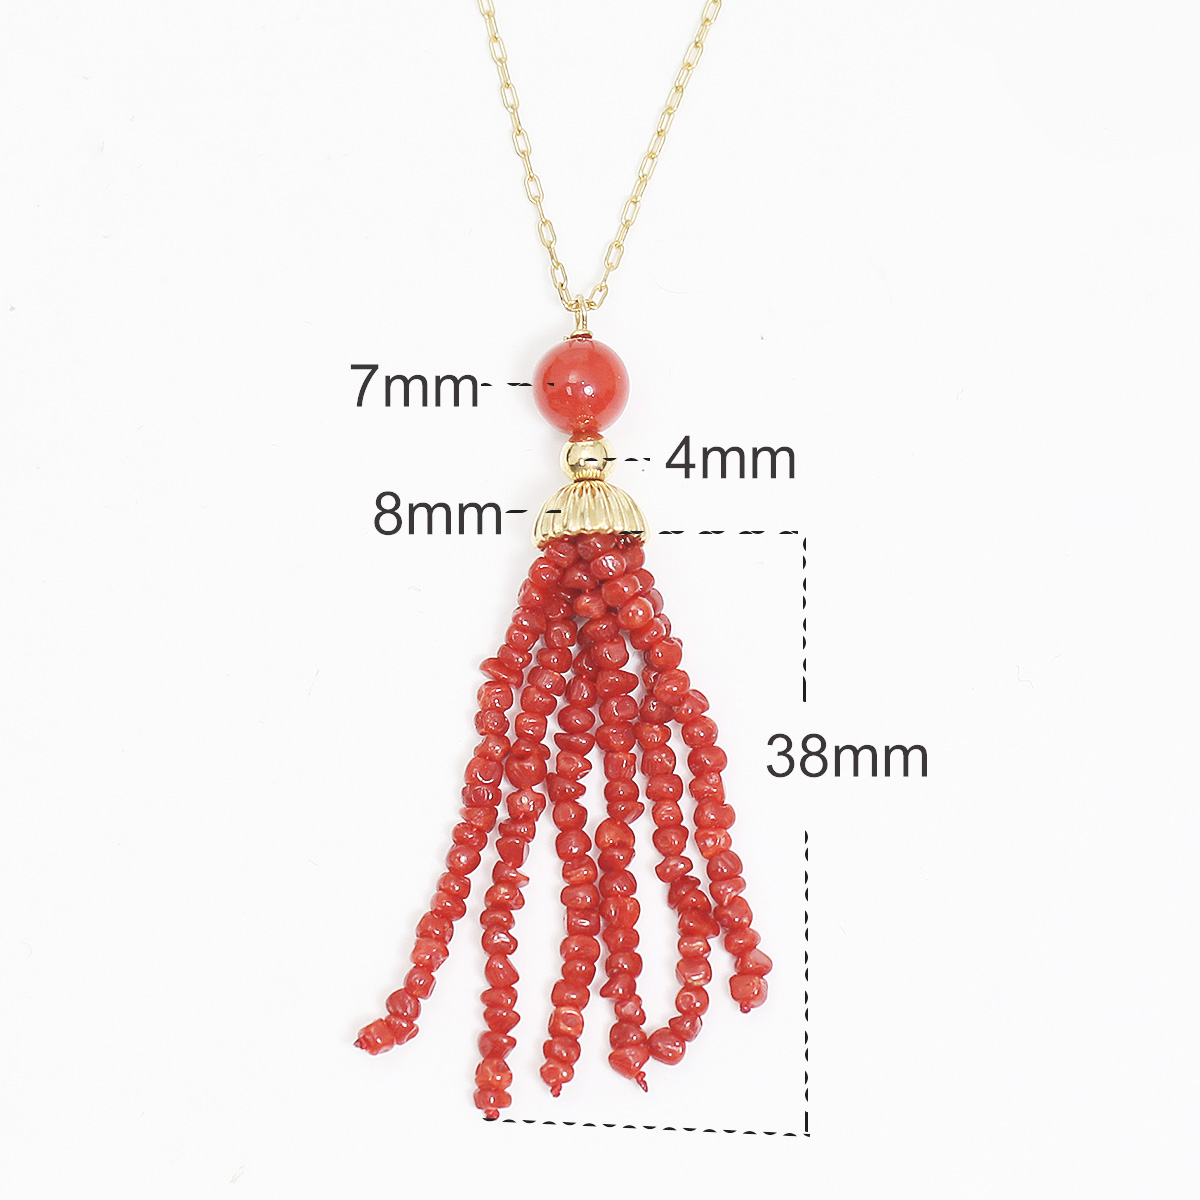 Beadsnice Gold Filled Necklace With Red Coral Dangle Dainty Jewelry Wedding Gift Best Gift For Her 39765 in Pendant Necklaces from Jewelry Accessories